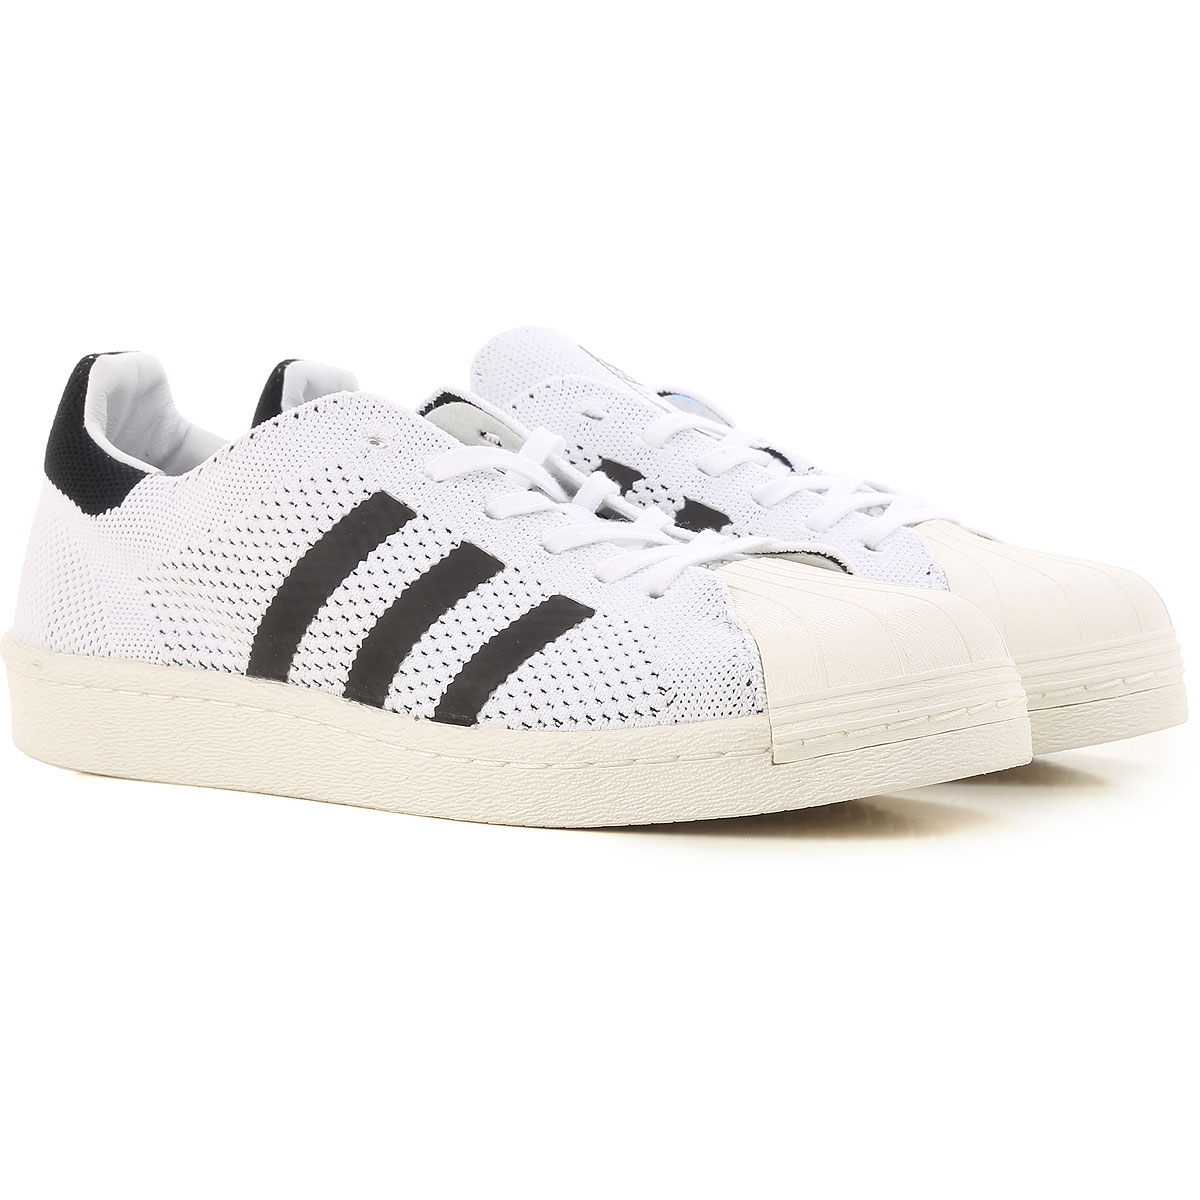 Image of Adidas Mens Shoes On Sale in Outlet, White, Fabric, 2017, US 11.5 - UK 11 - EU 45.5 US 6.5 - UK 6 - EU 39